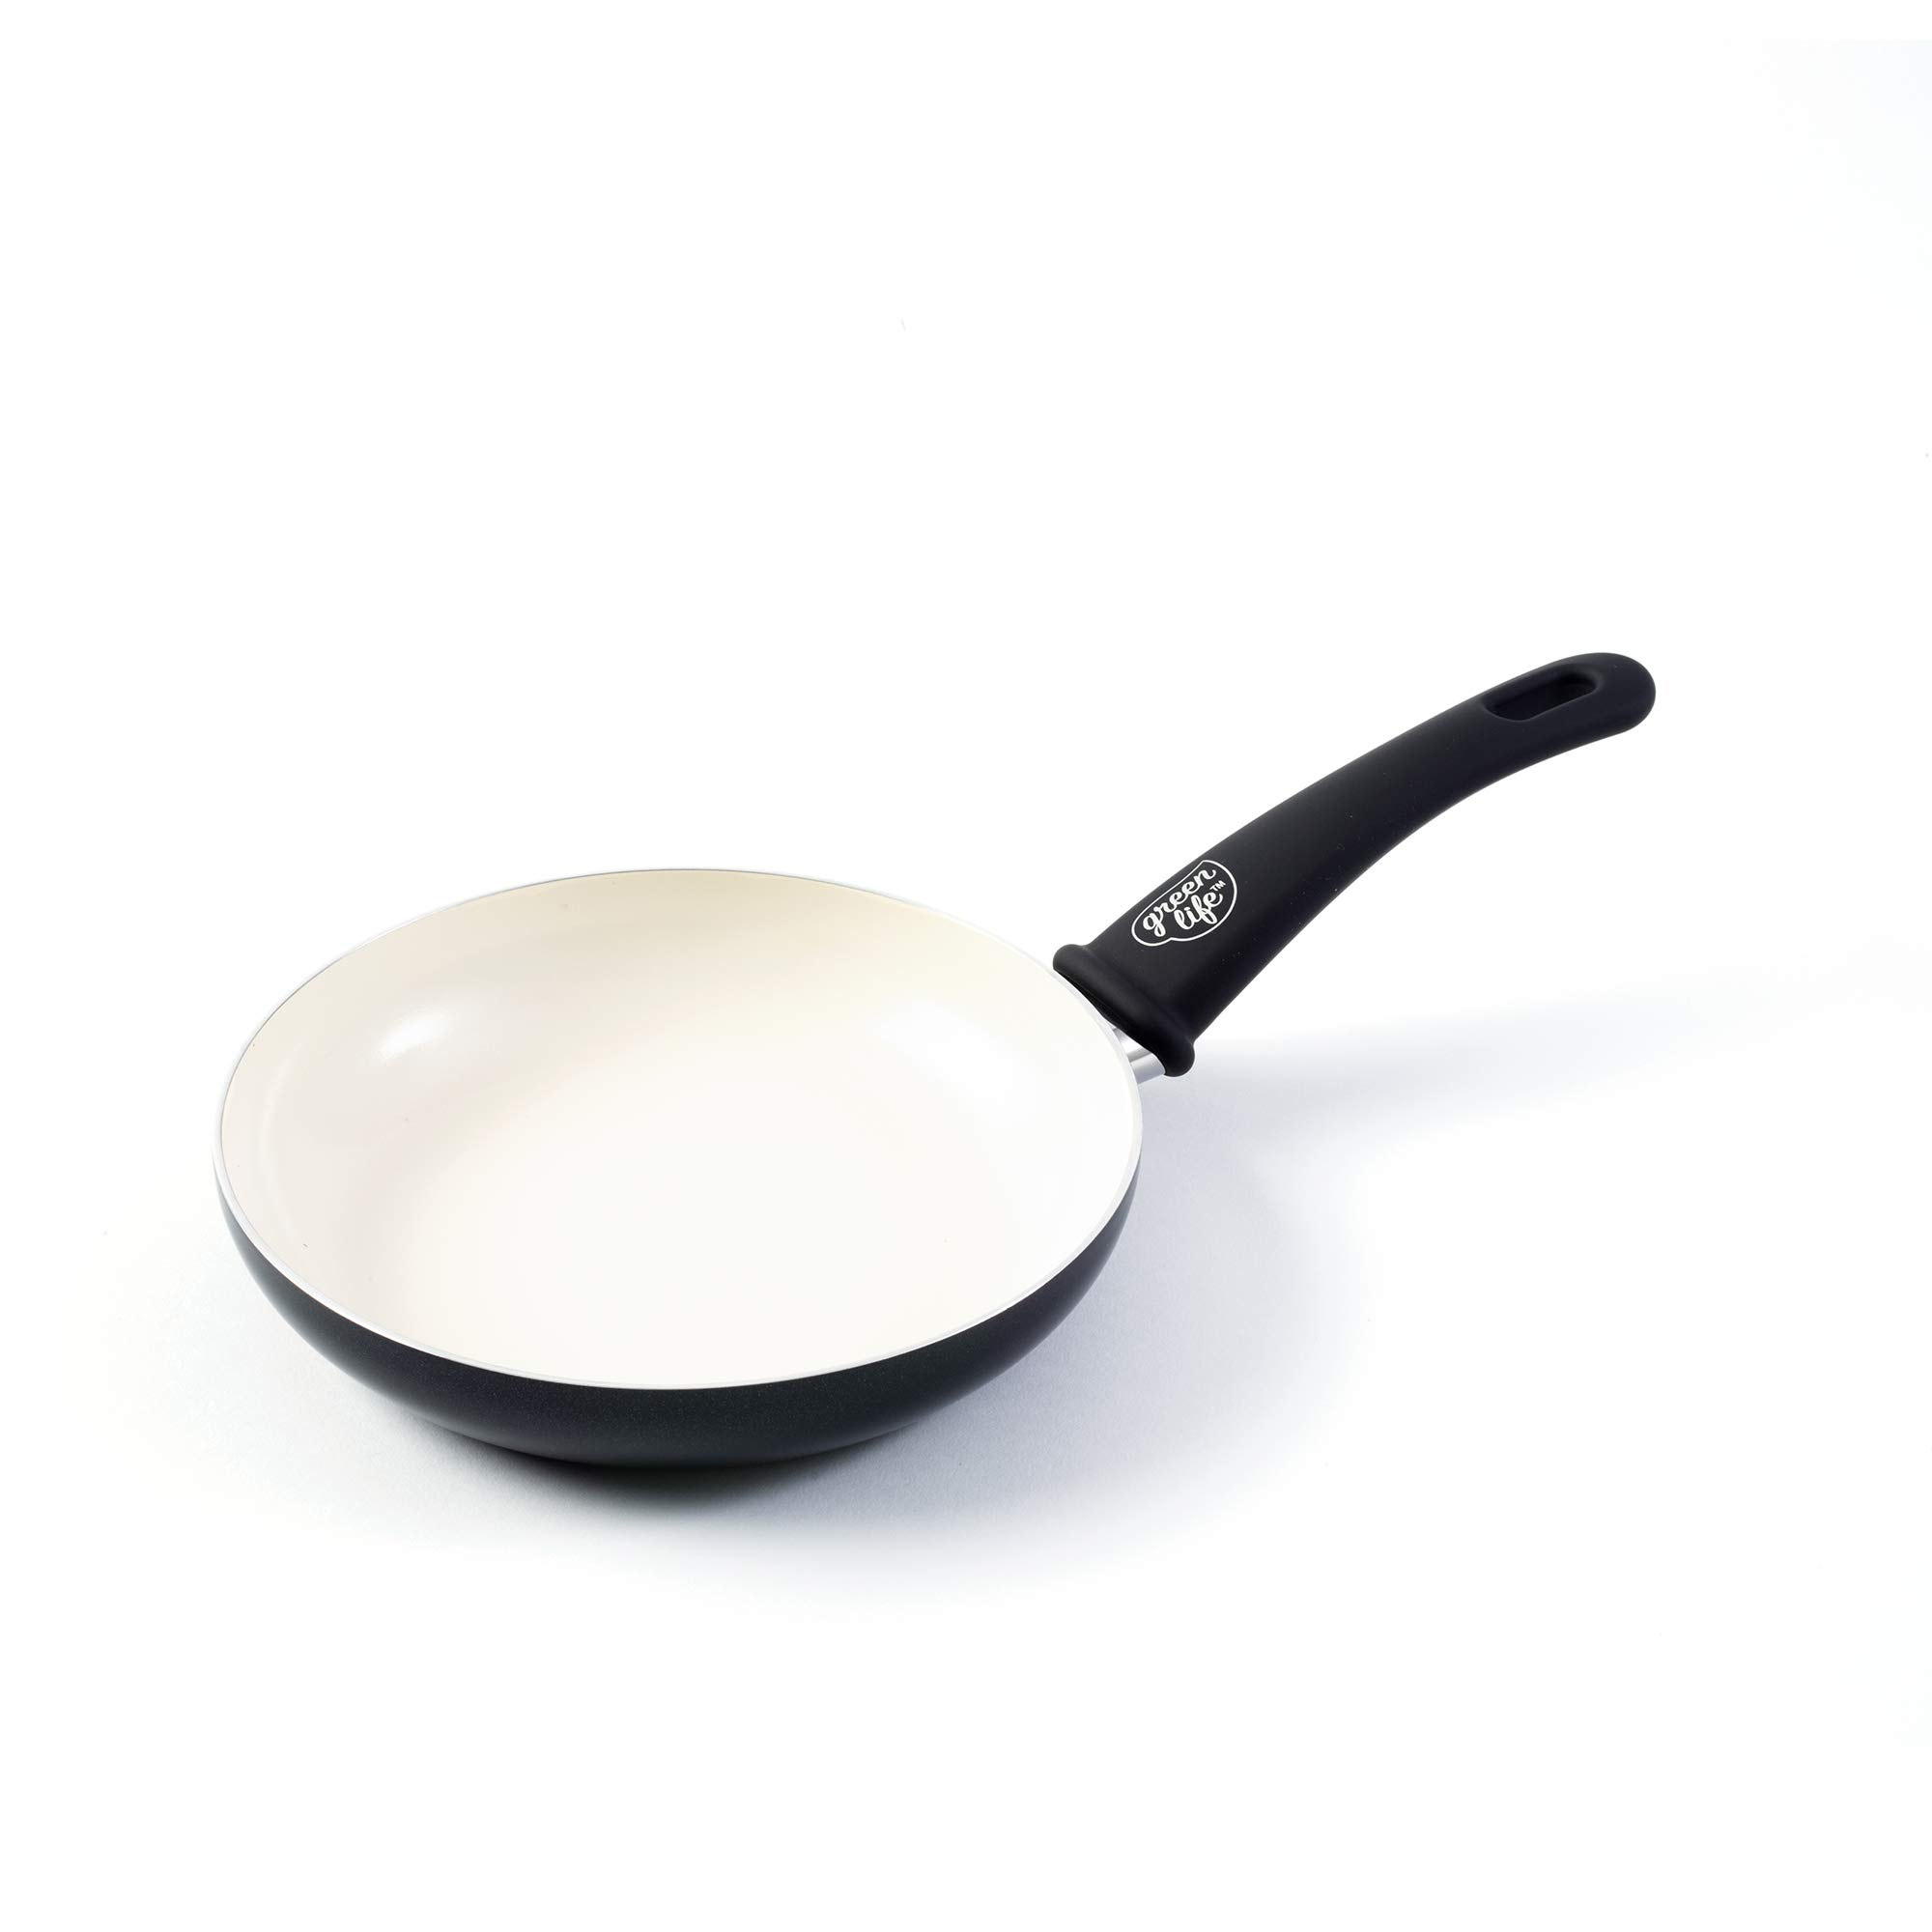 GreenLife Soft Grip 8'' Ceramic Non-Stick Open Frypan, Black - CW000894-002 by GreenLife